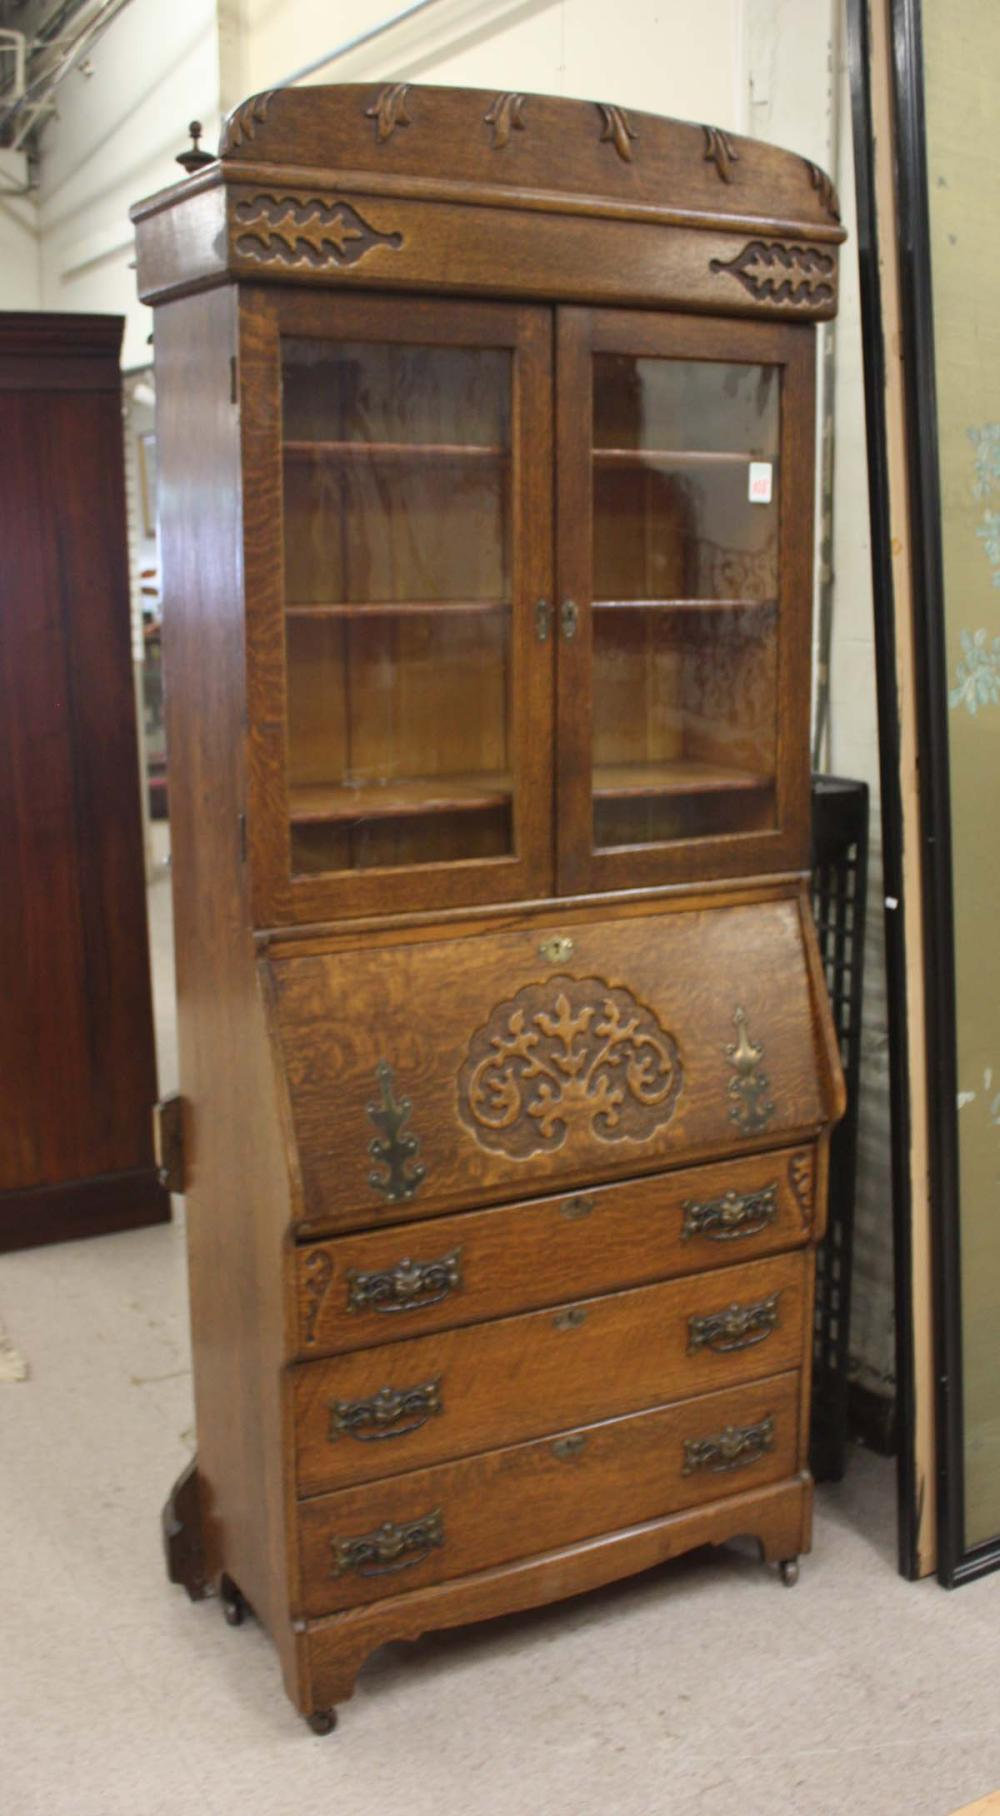 Lot 108: LATE VICTORIAN CARVED OAK SECRETARY BOOKCASE, Rock